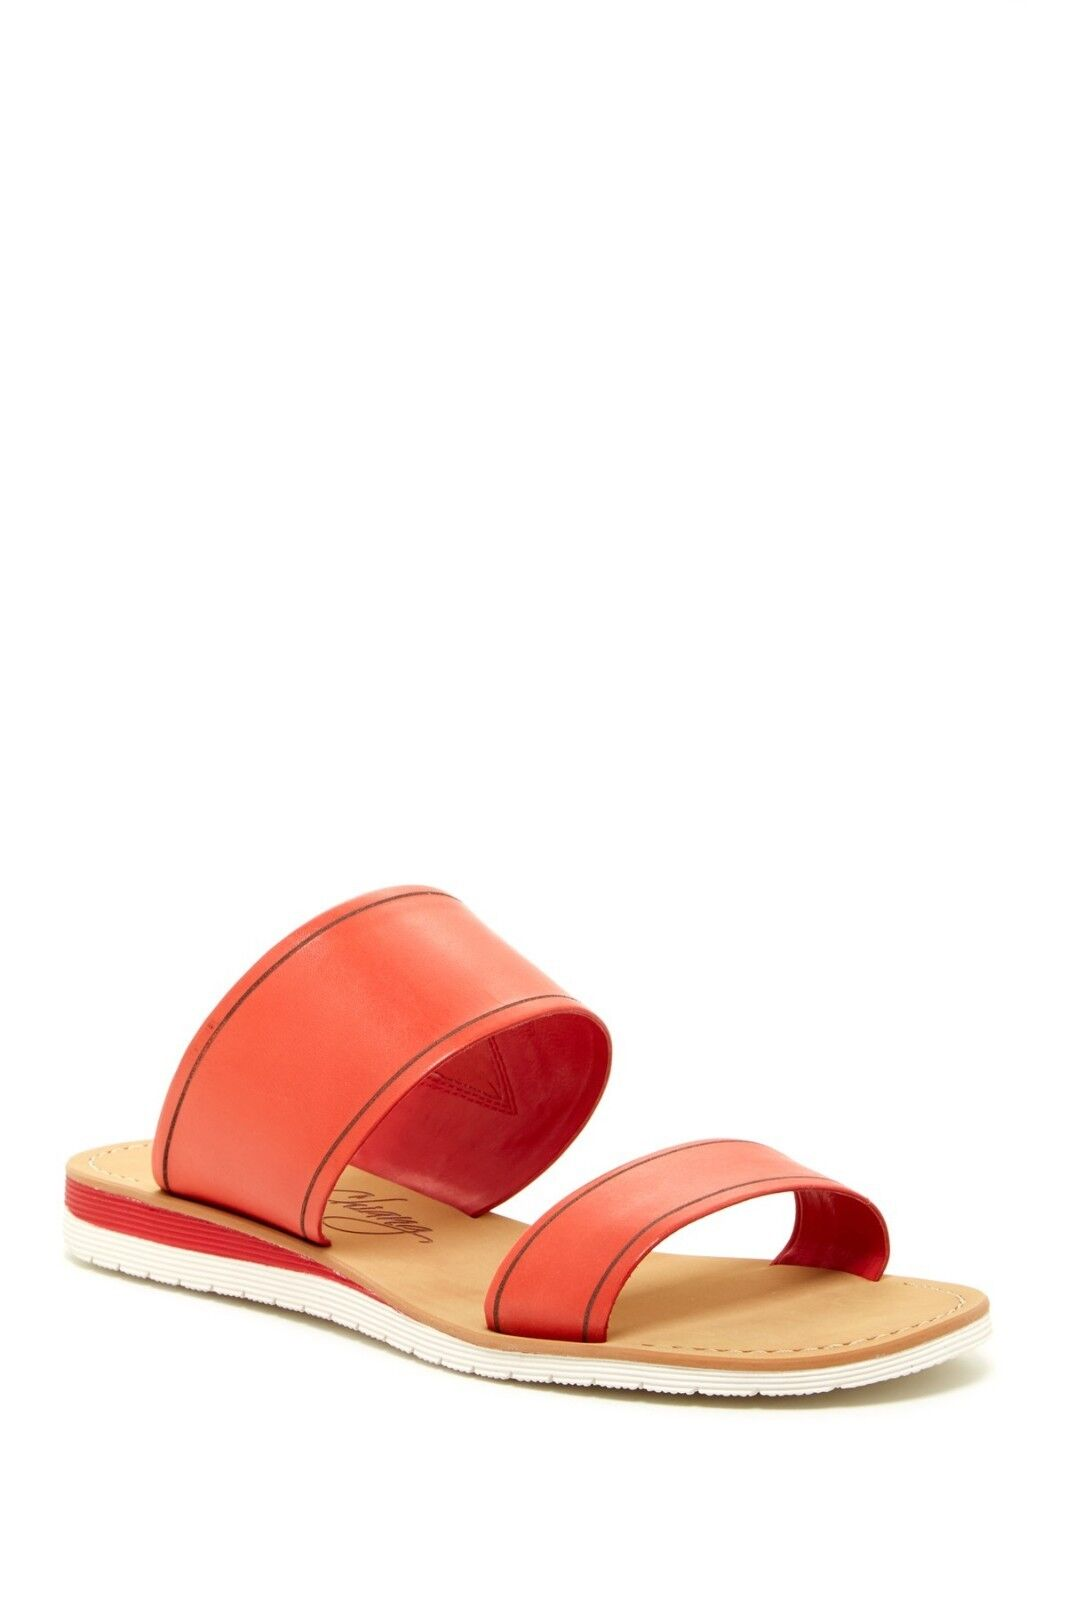 NEW Arturo Chiang FLAME Joey Slide Sandal, RED FLAME Chiang VACHETTA, Women Size 9.5  $69 eed31a